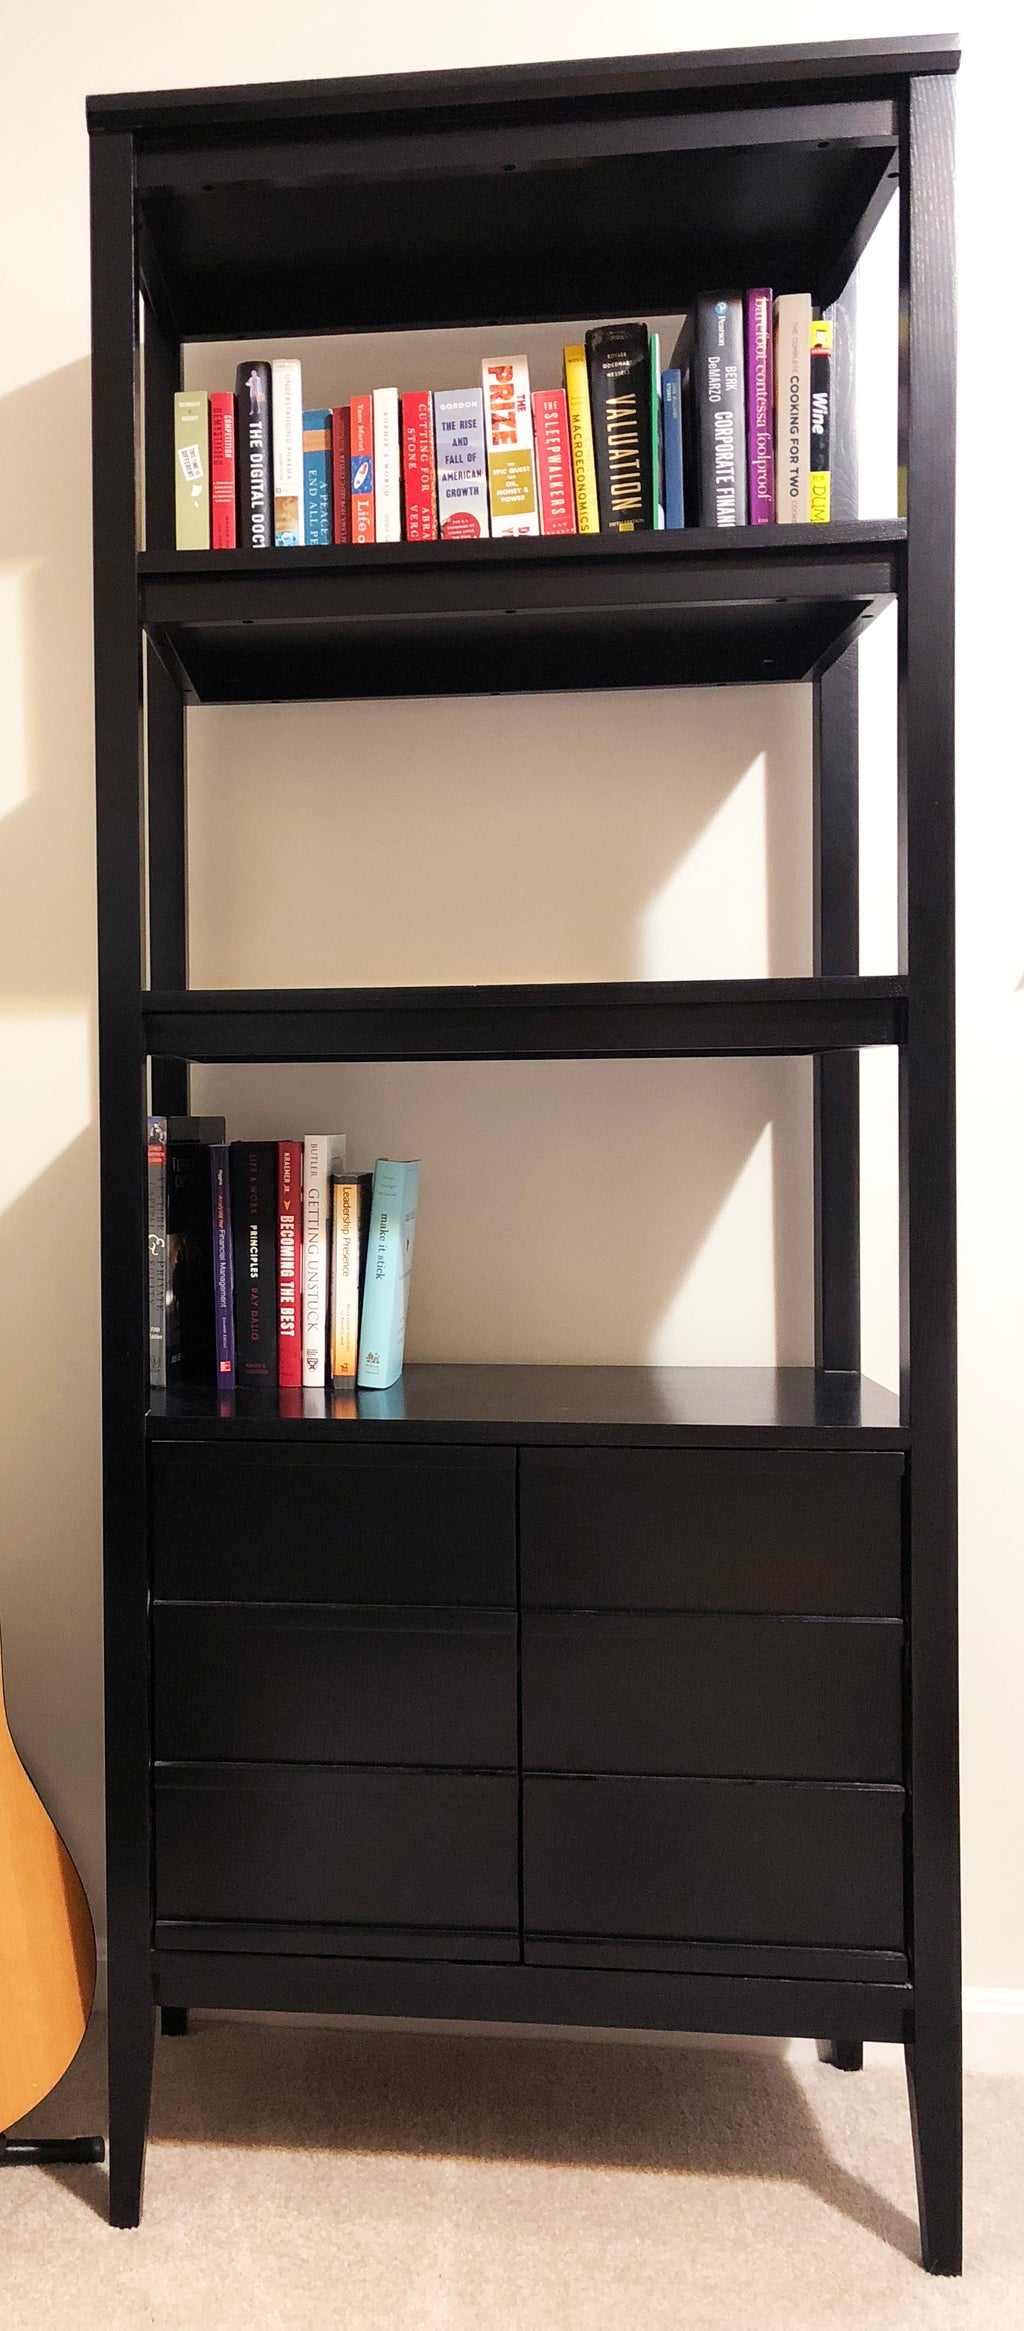 Crate & Barrel Bookshelf